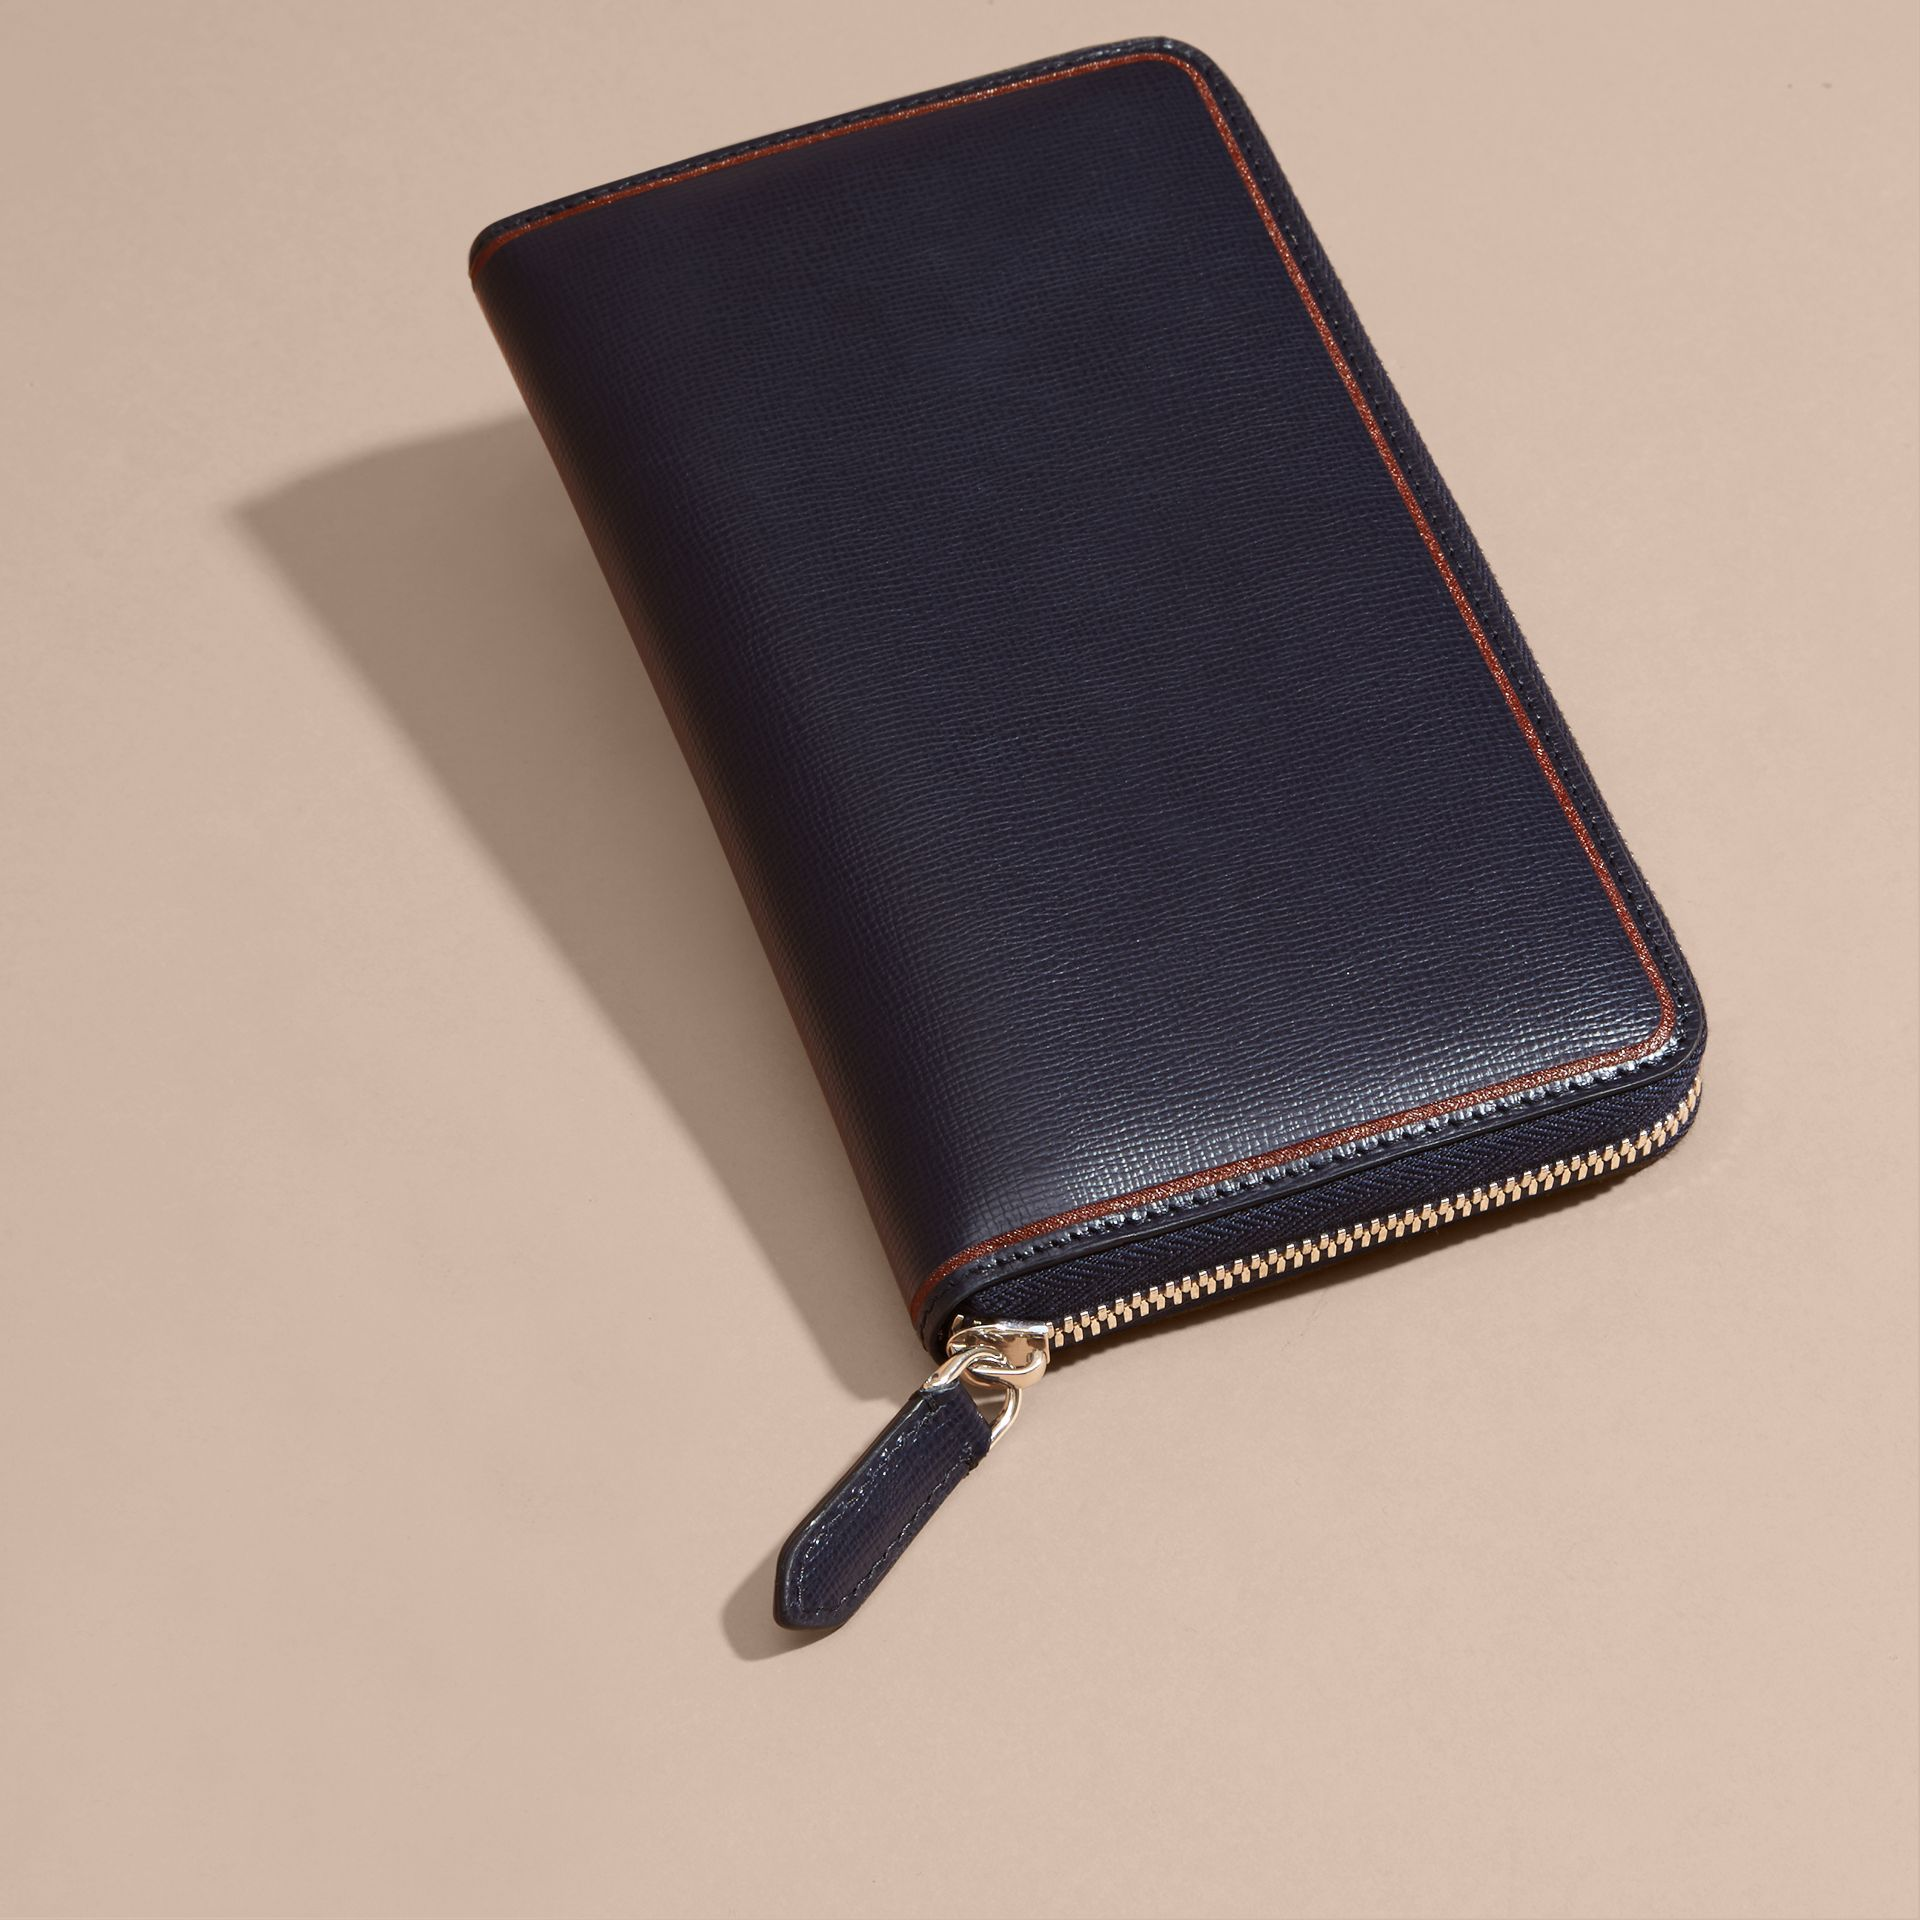 Border Detail London Leather Ziparound Wallet Dark Navy - gallery image 3